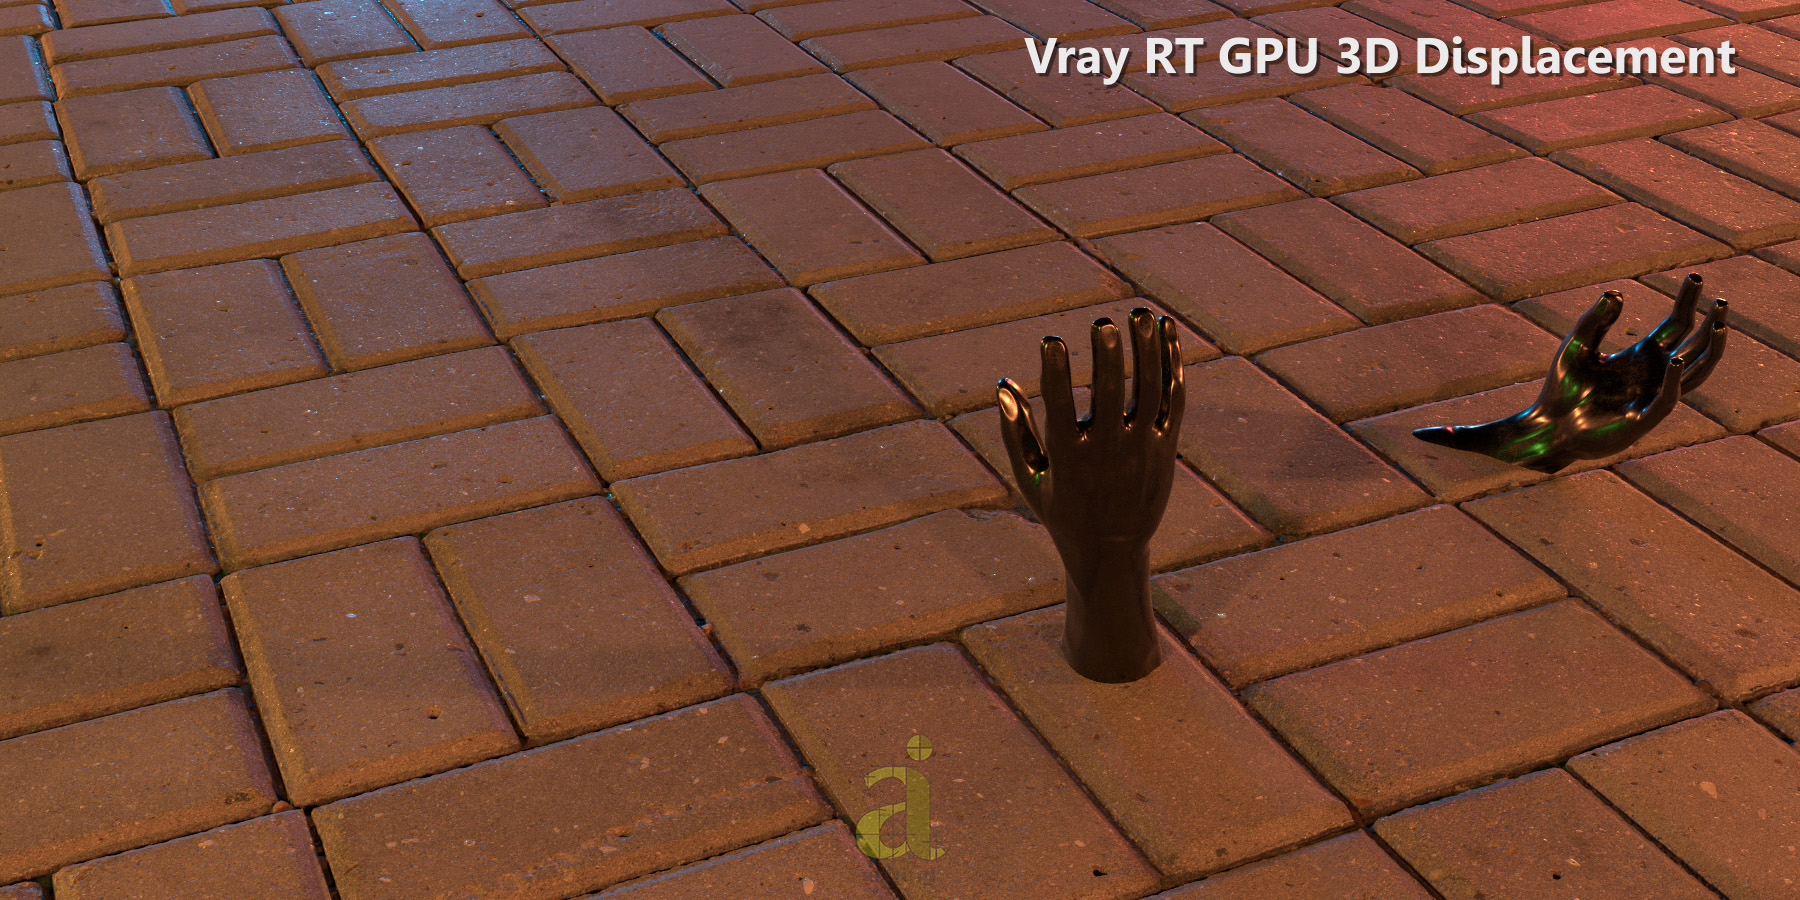 Vray RT GPU - Displacement Test